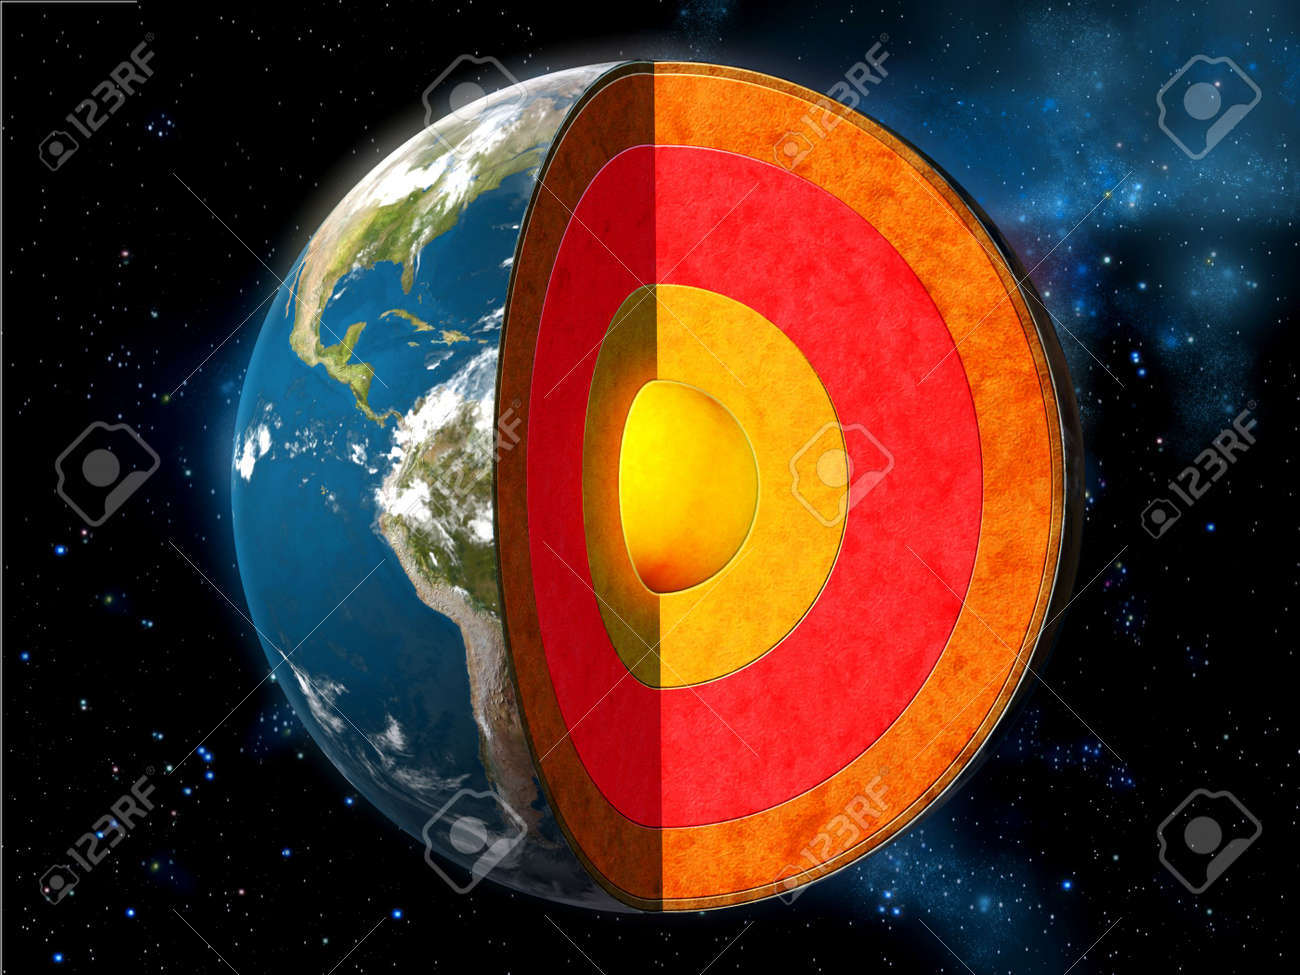 Earth cross section showing its internal structure. Digital illustration. Stock Illustration - 2972550